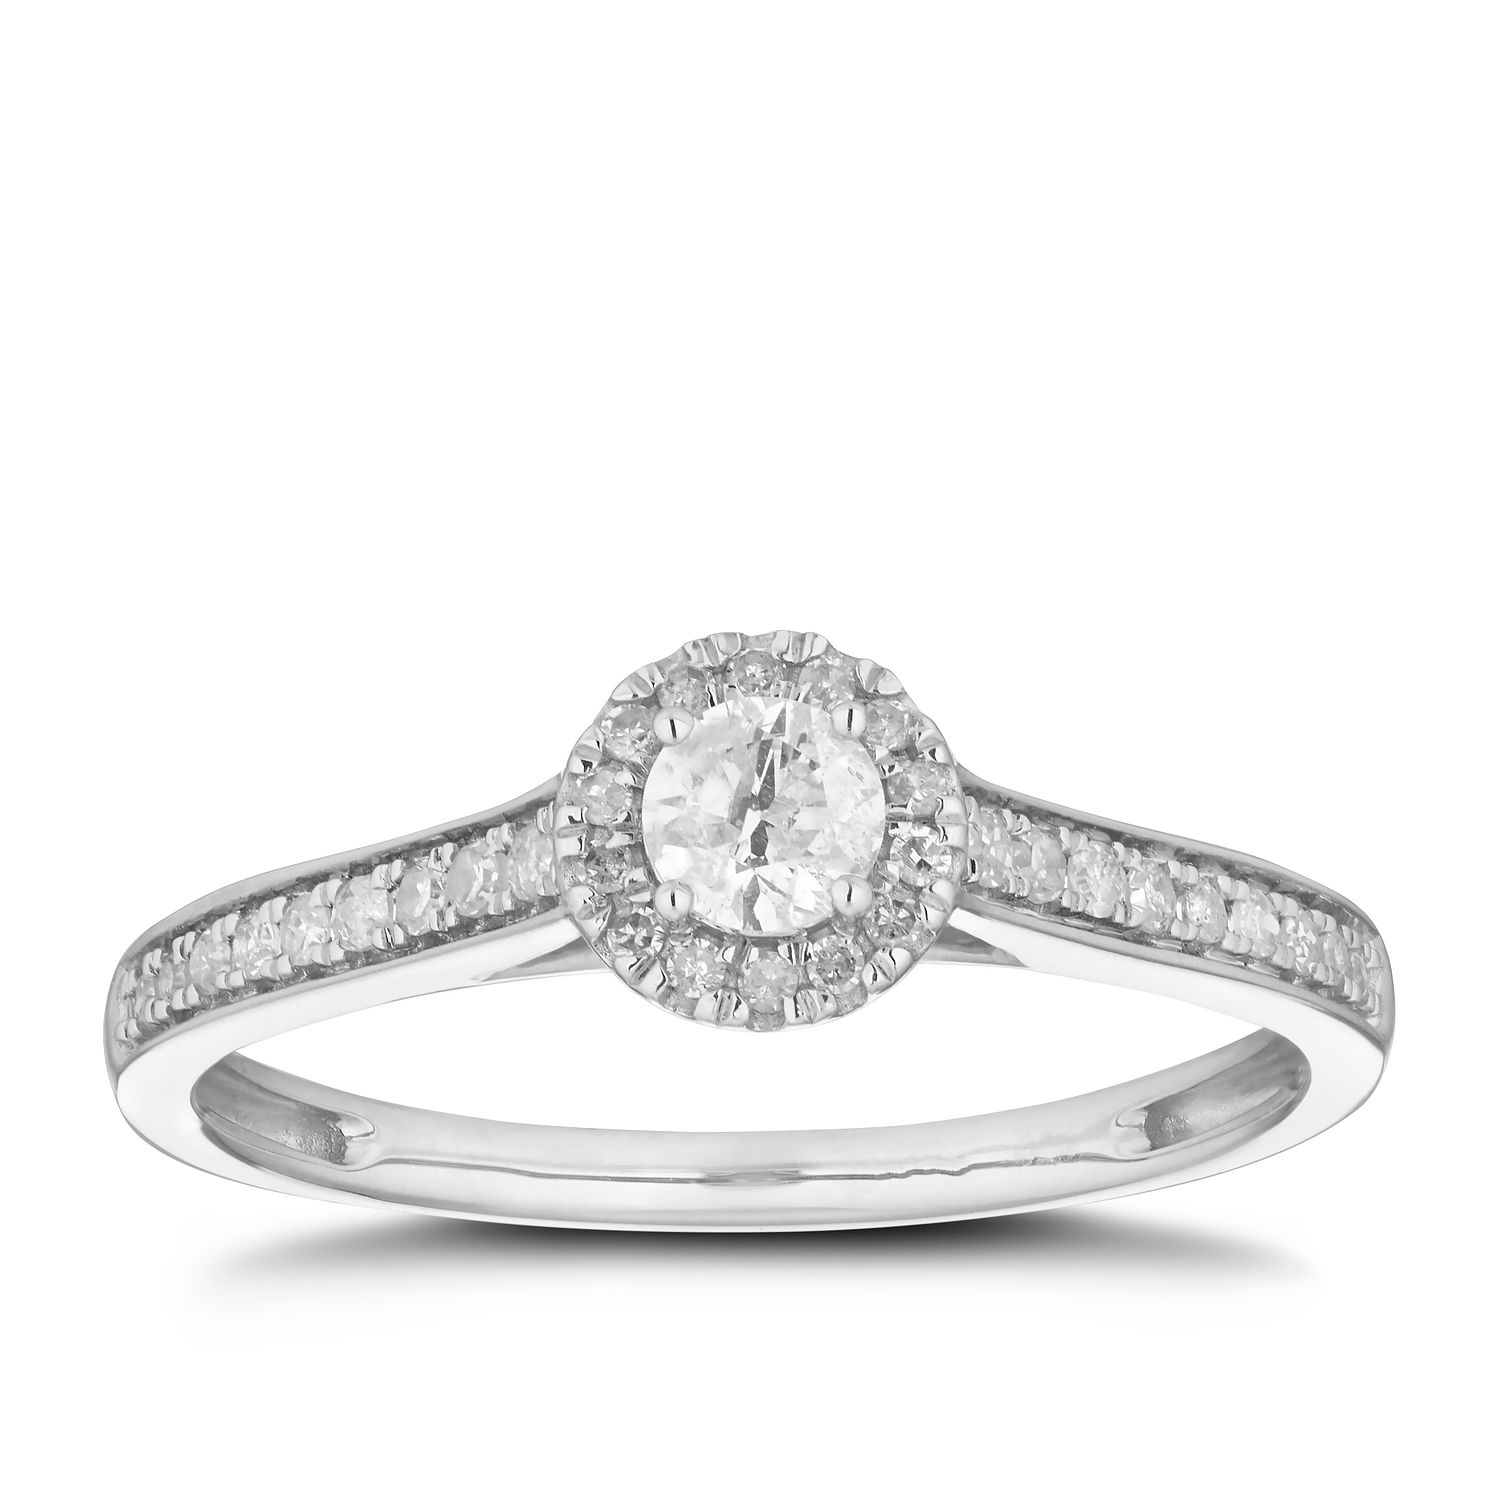 9ct White Gold 1/3ct Diamond Solitaire Ring - Product number 5923735